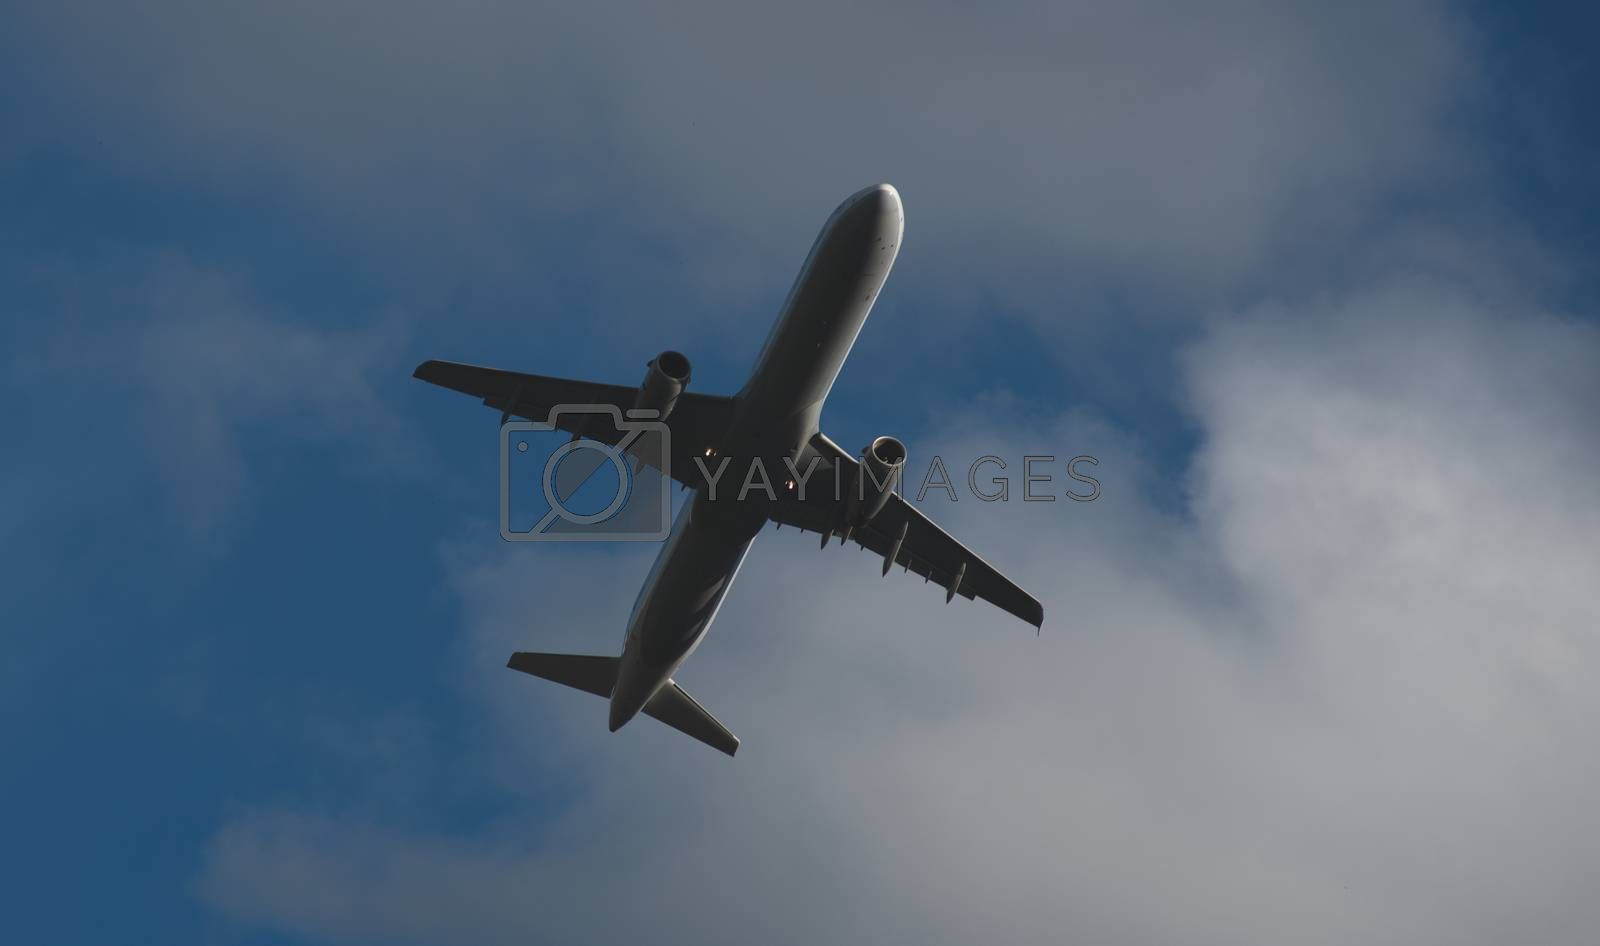 Silhouette of a plane taking off against the blue sky